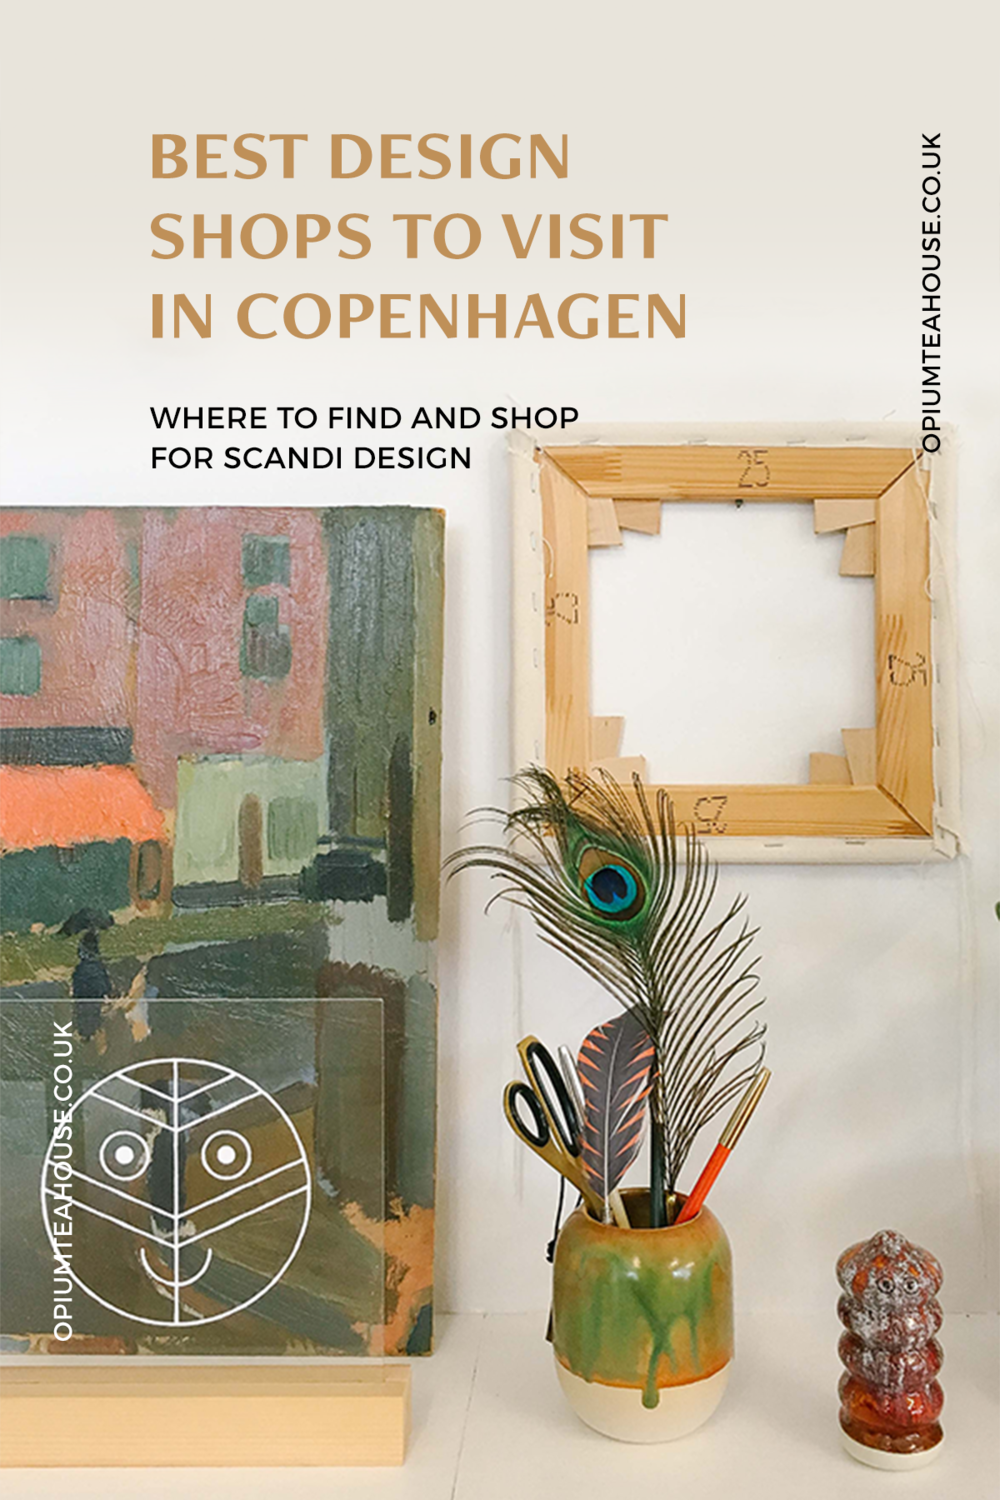 Copenhagen Best Design Shops